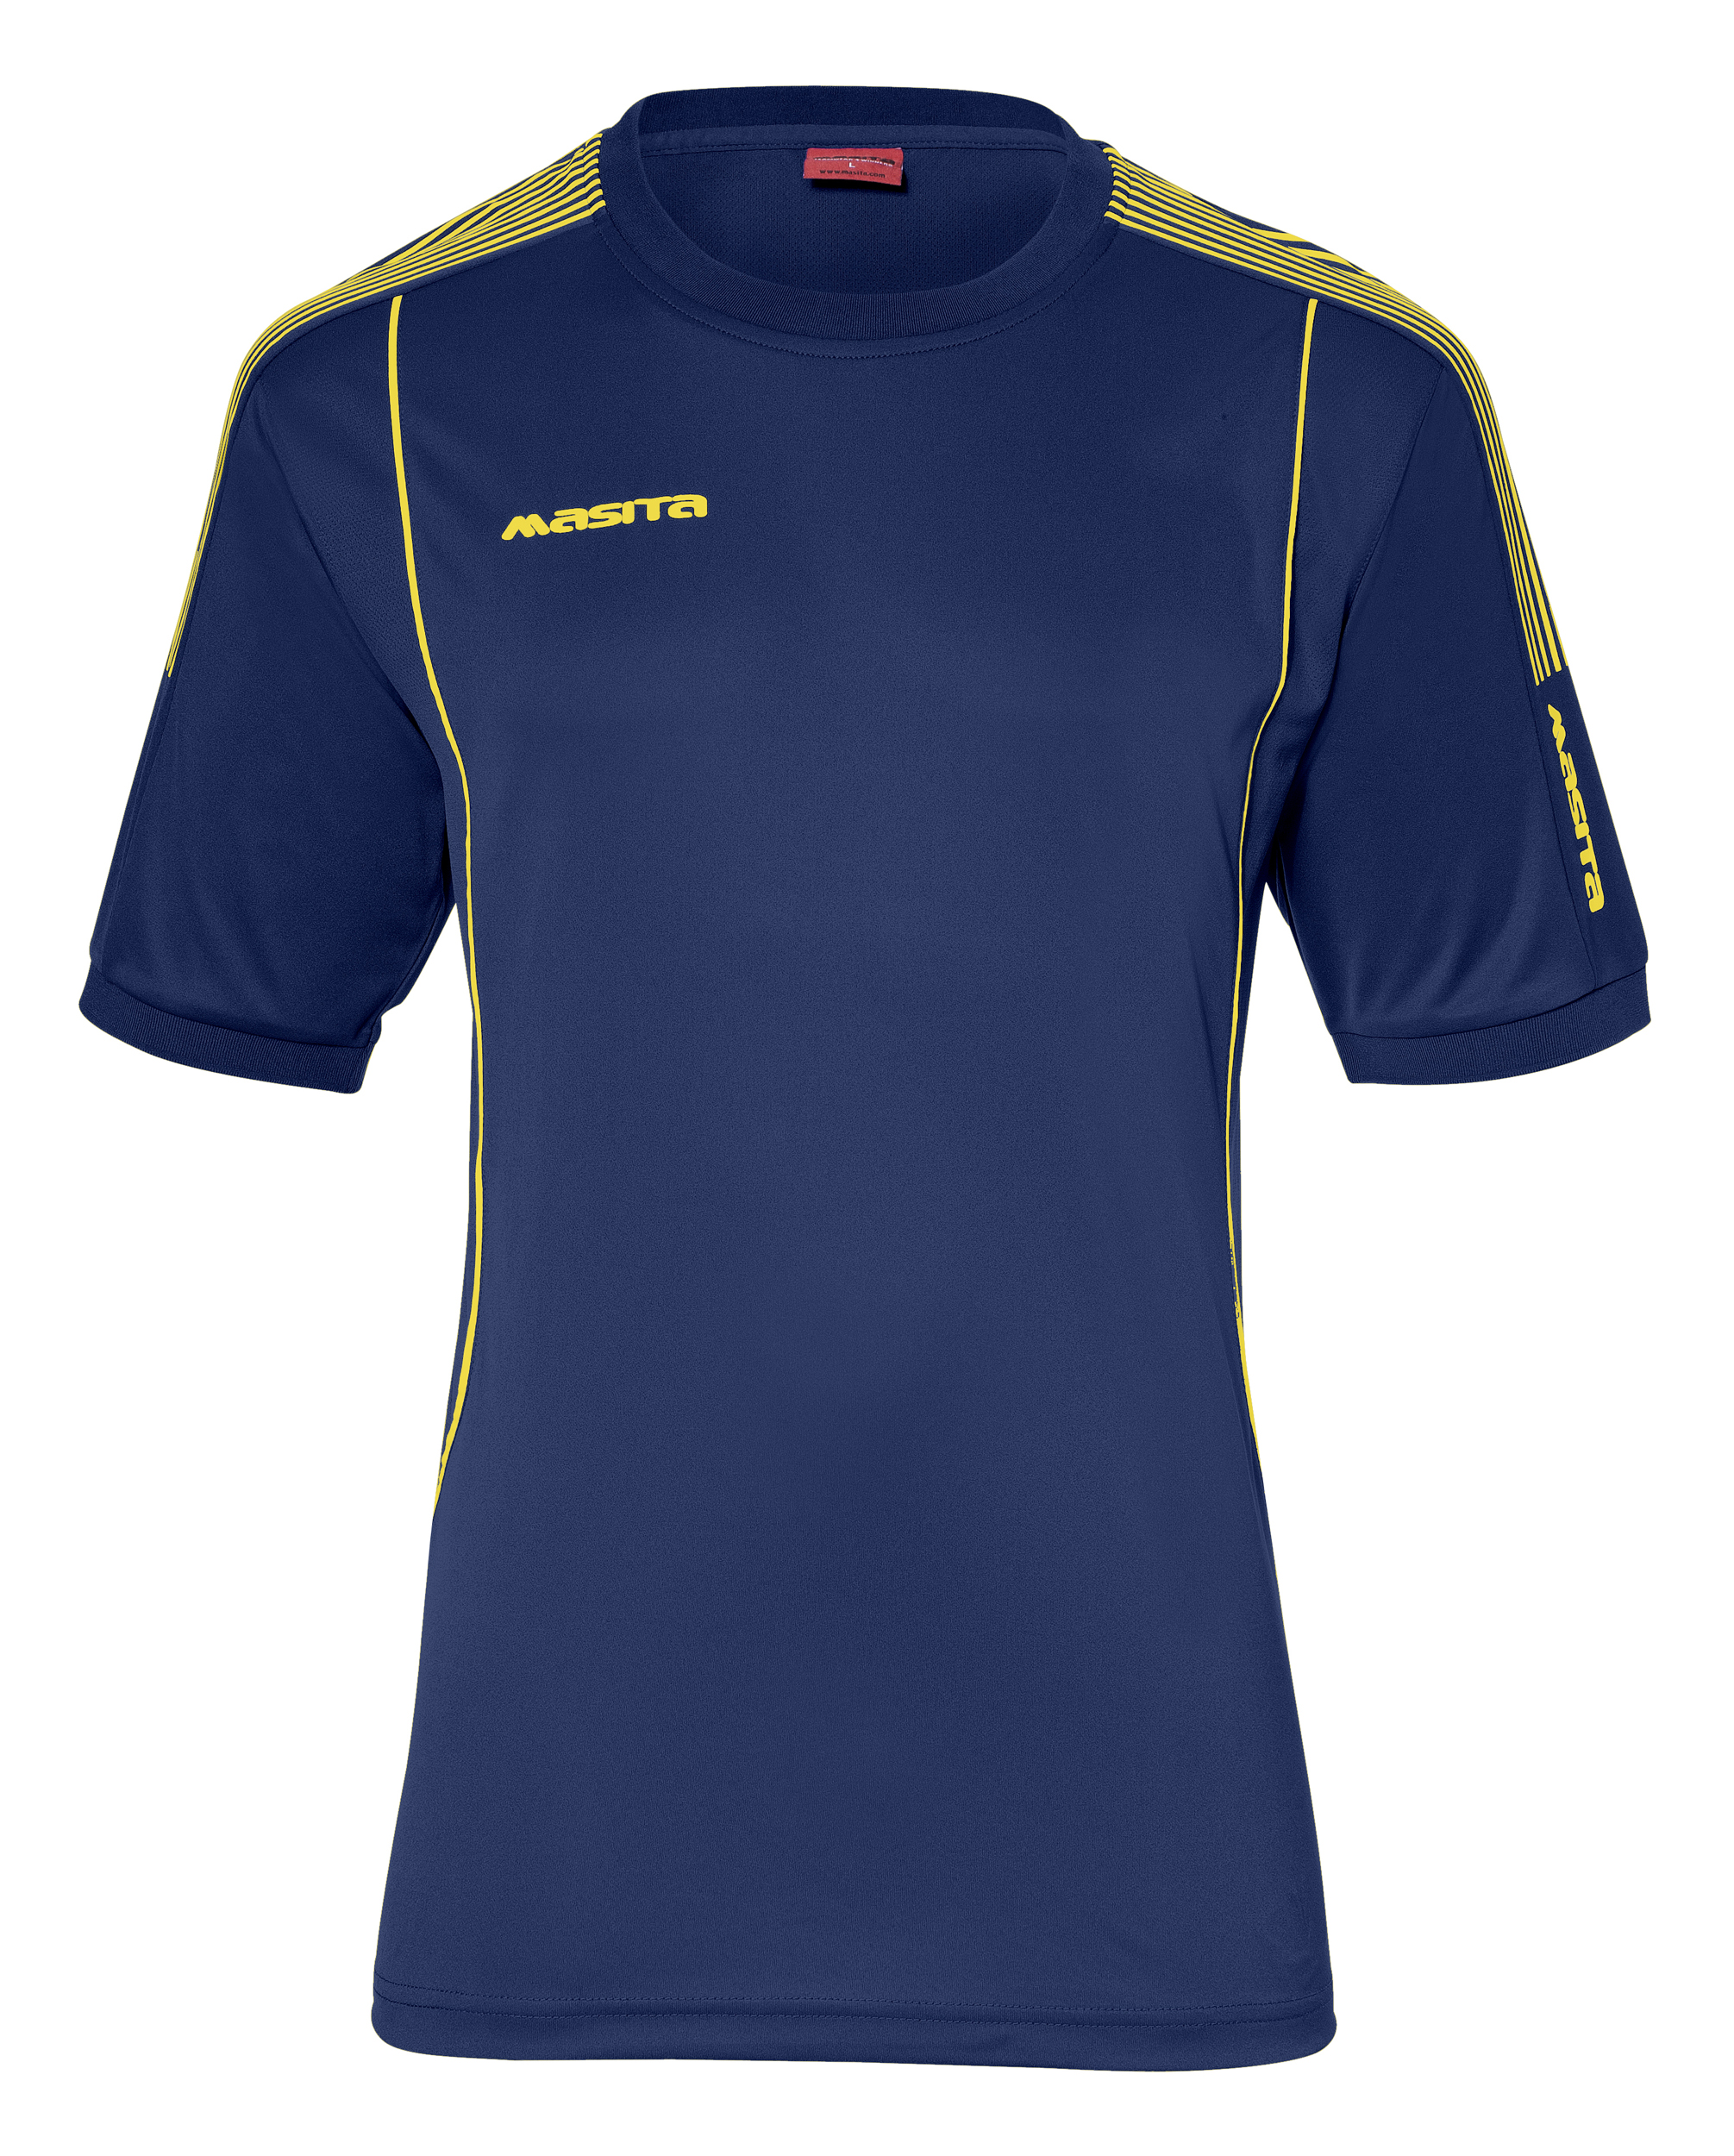 T-Shirt Barca  Navy Blue / Yellow